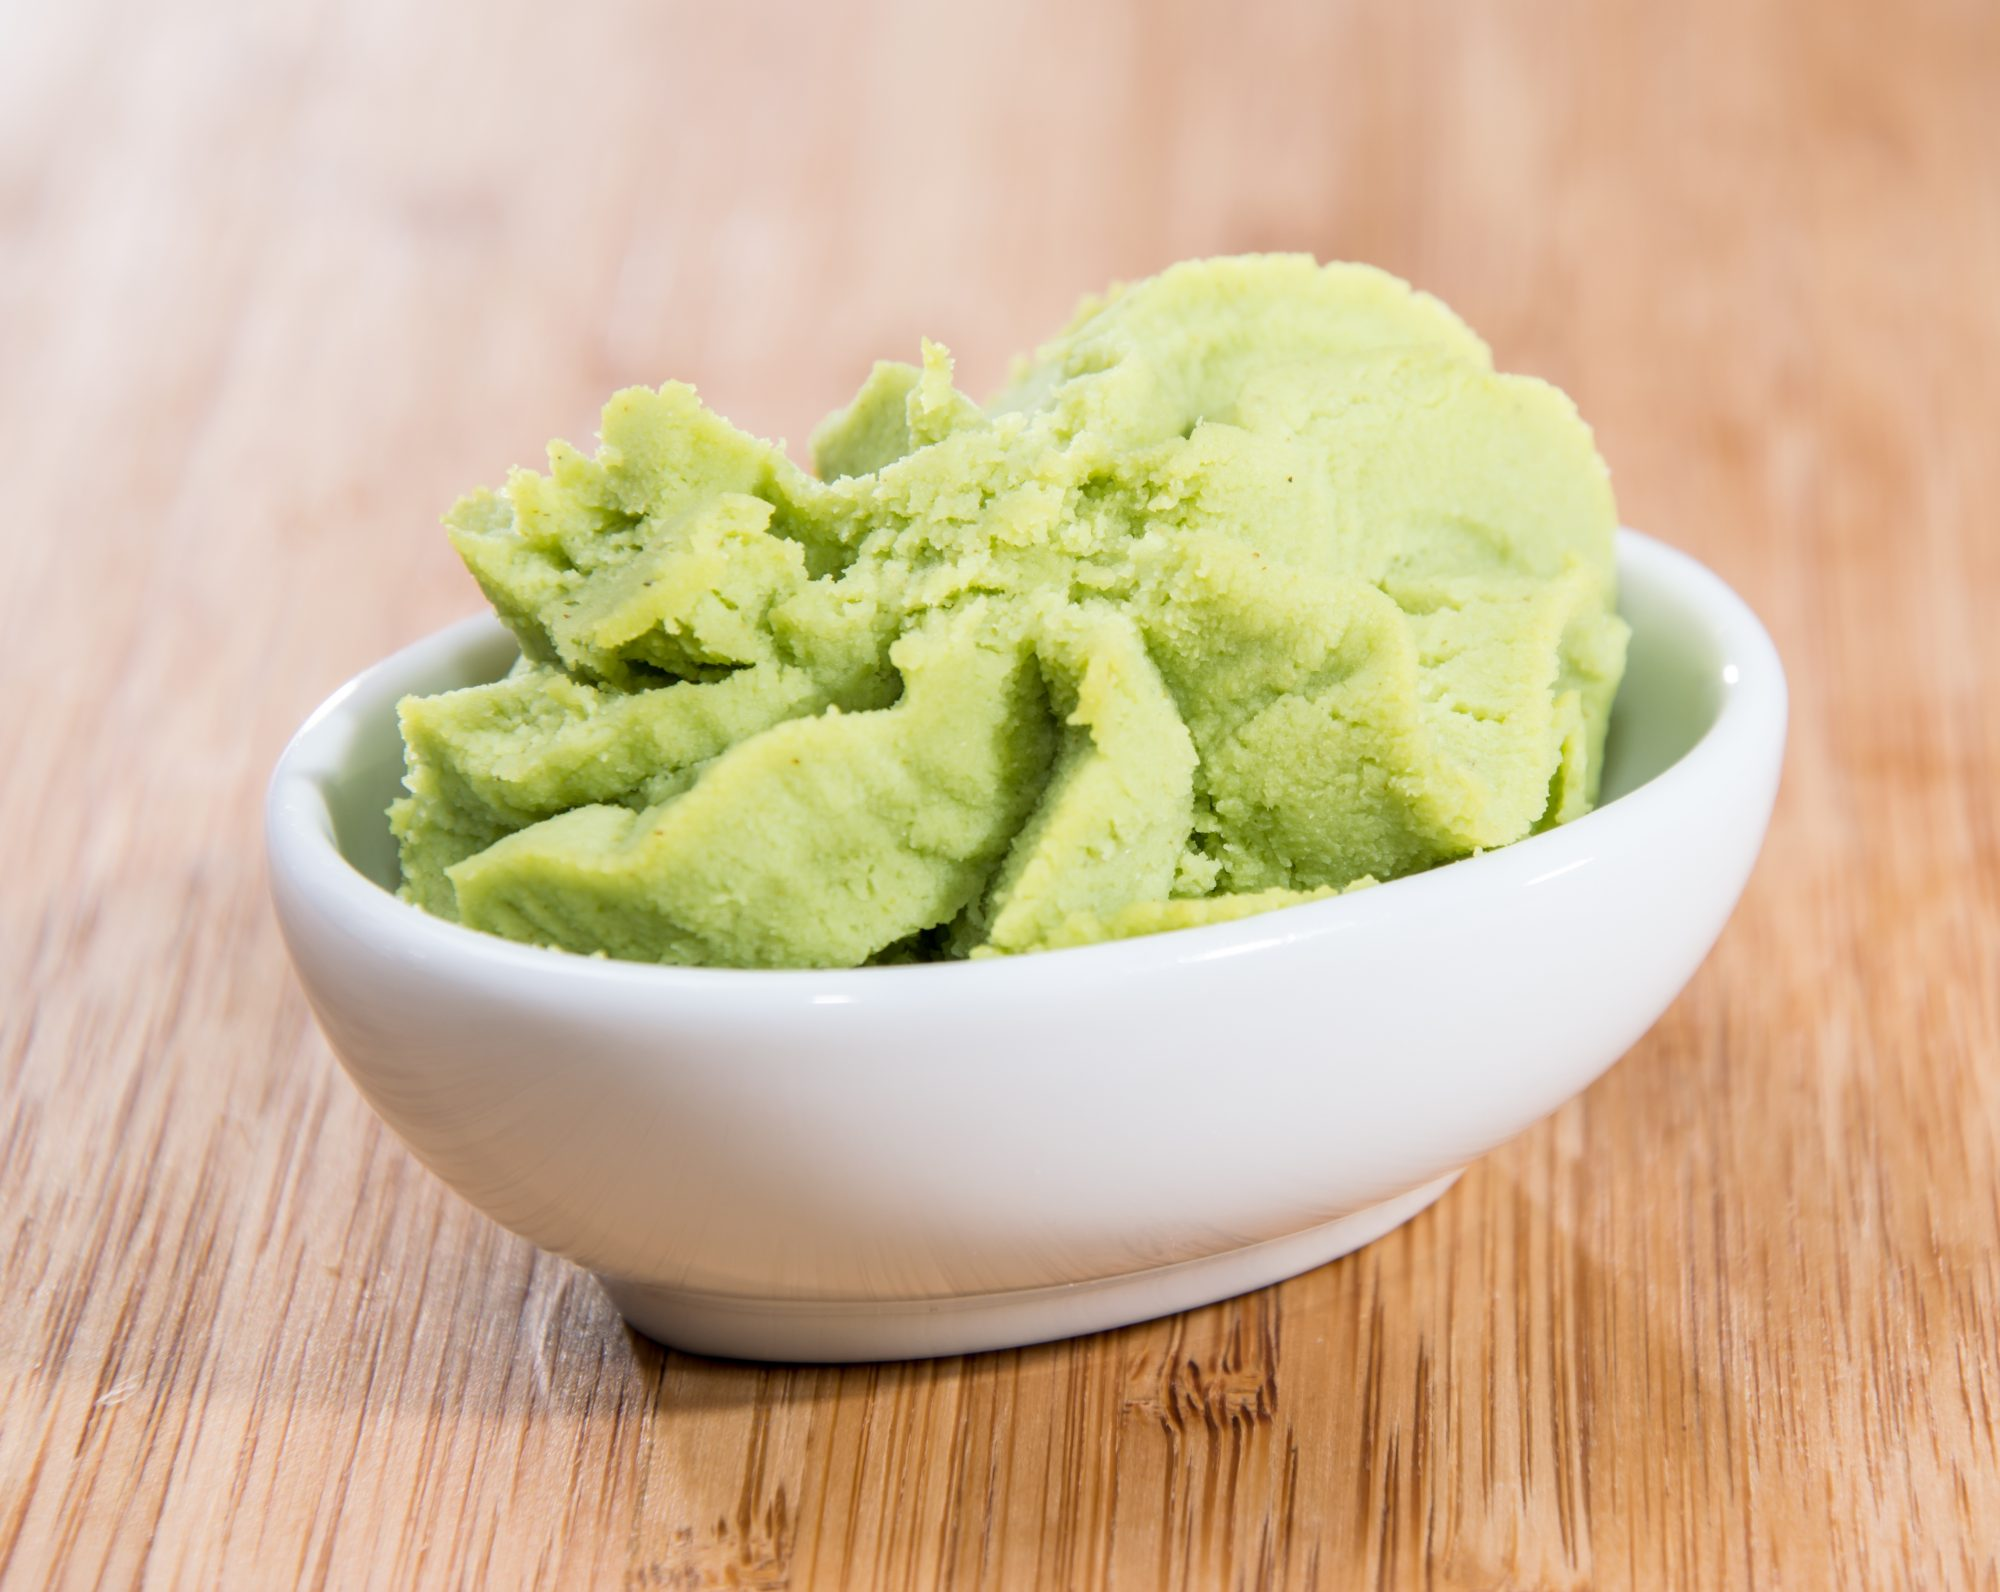 Sorry, But That's Not Really Wasabi